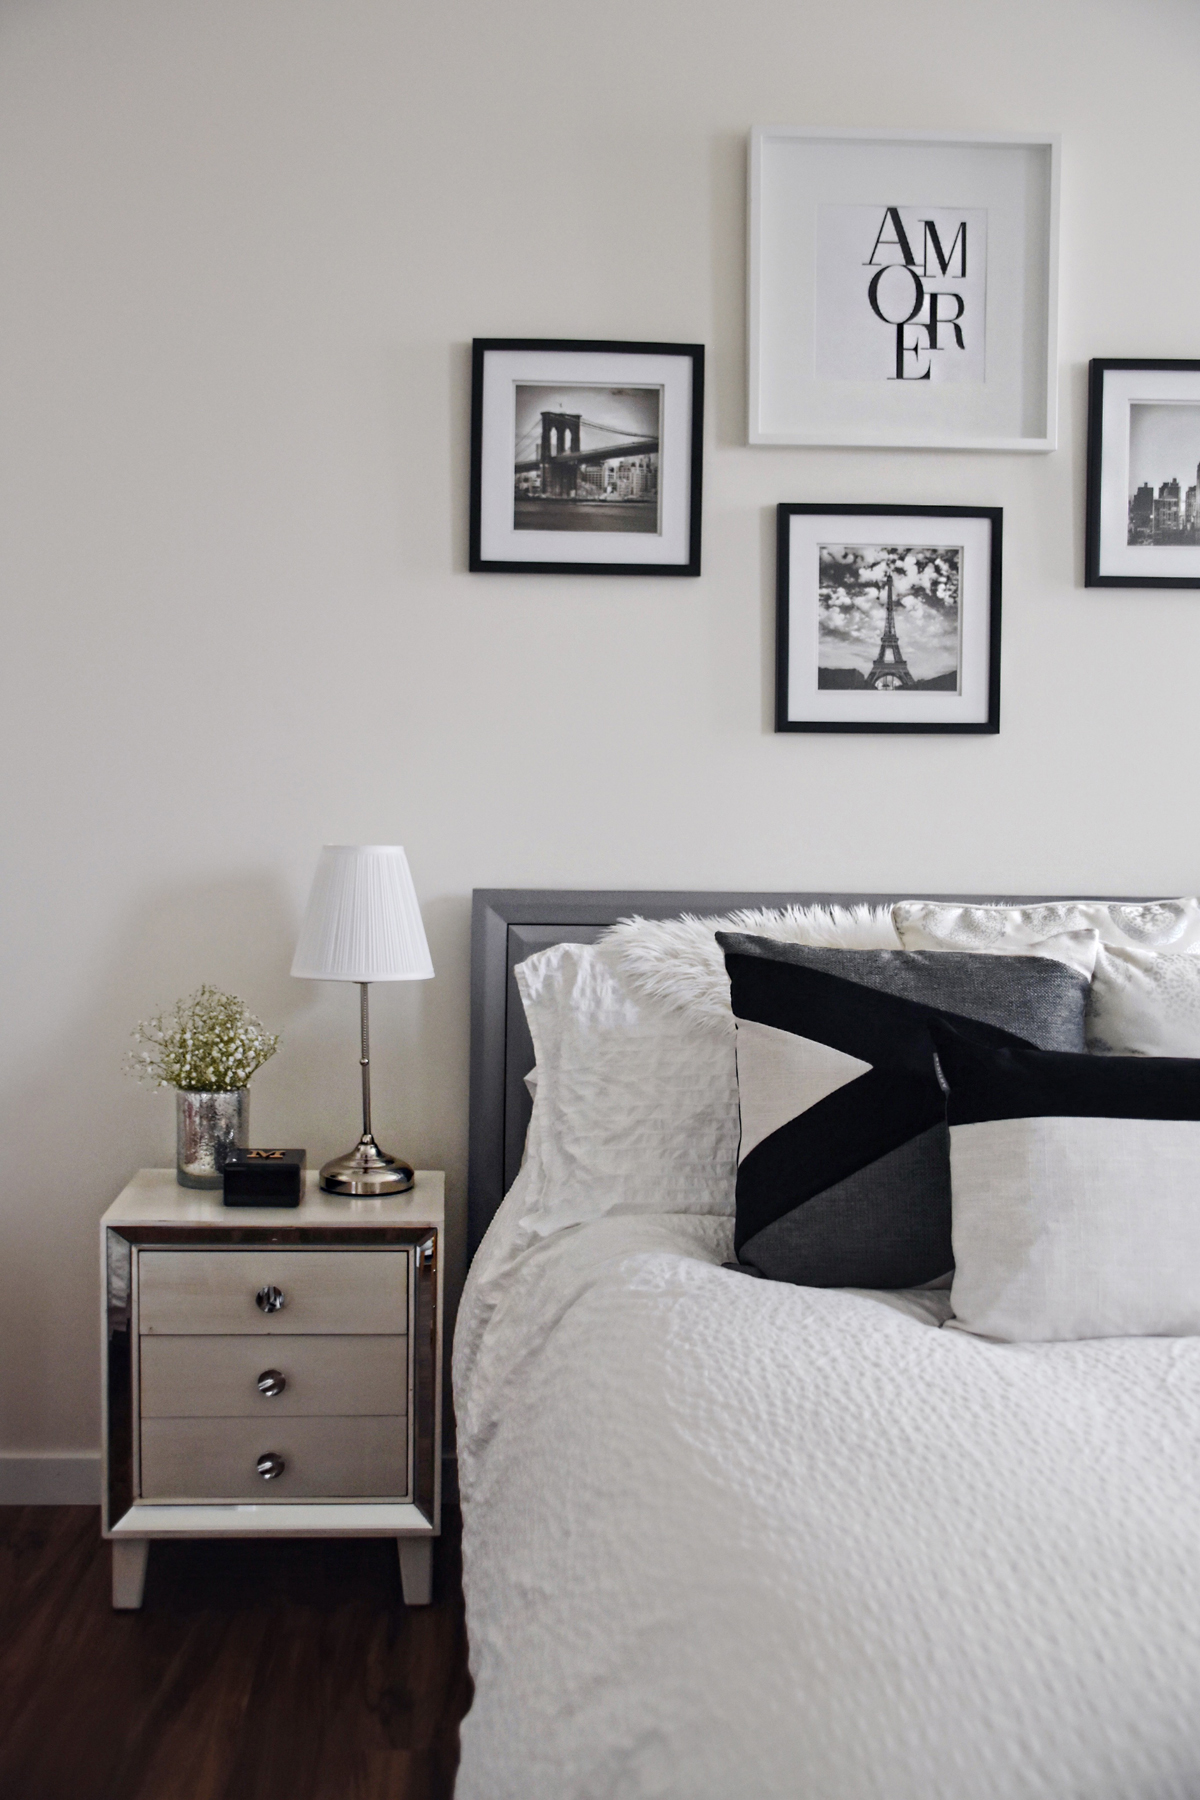 Bedroom decor inspiration with Article's Velu pillow collection, and the Lanna Throw